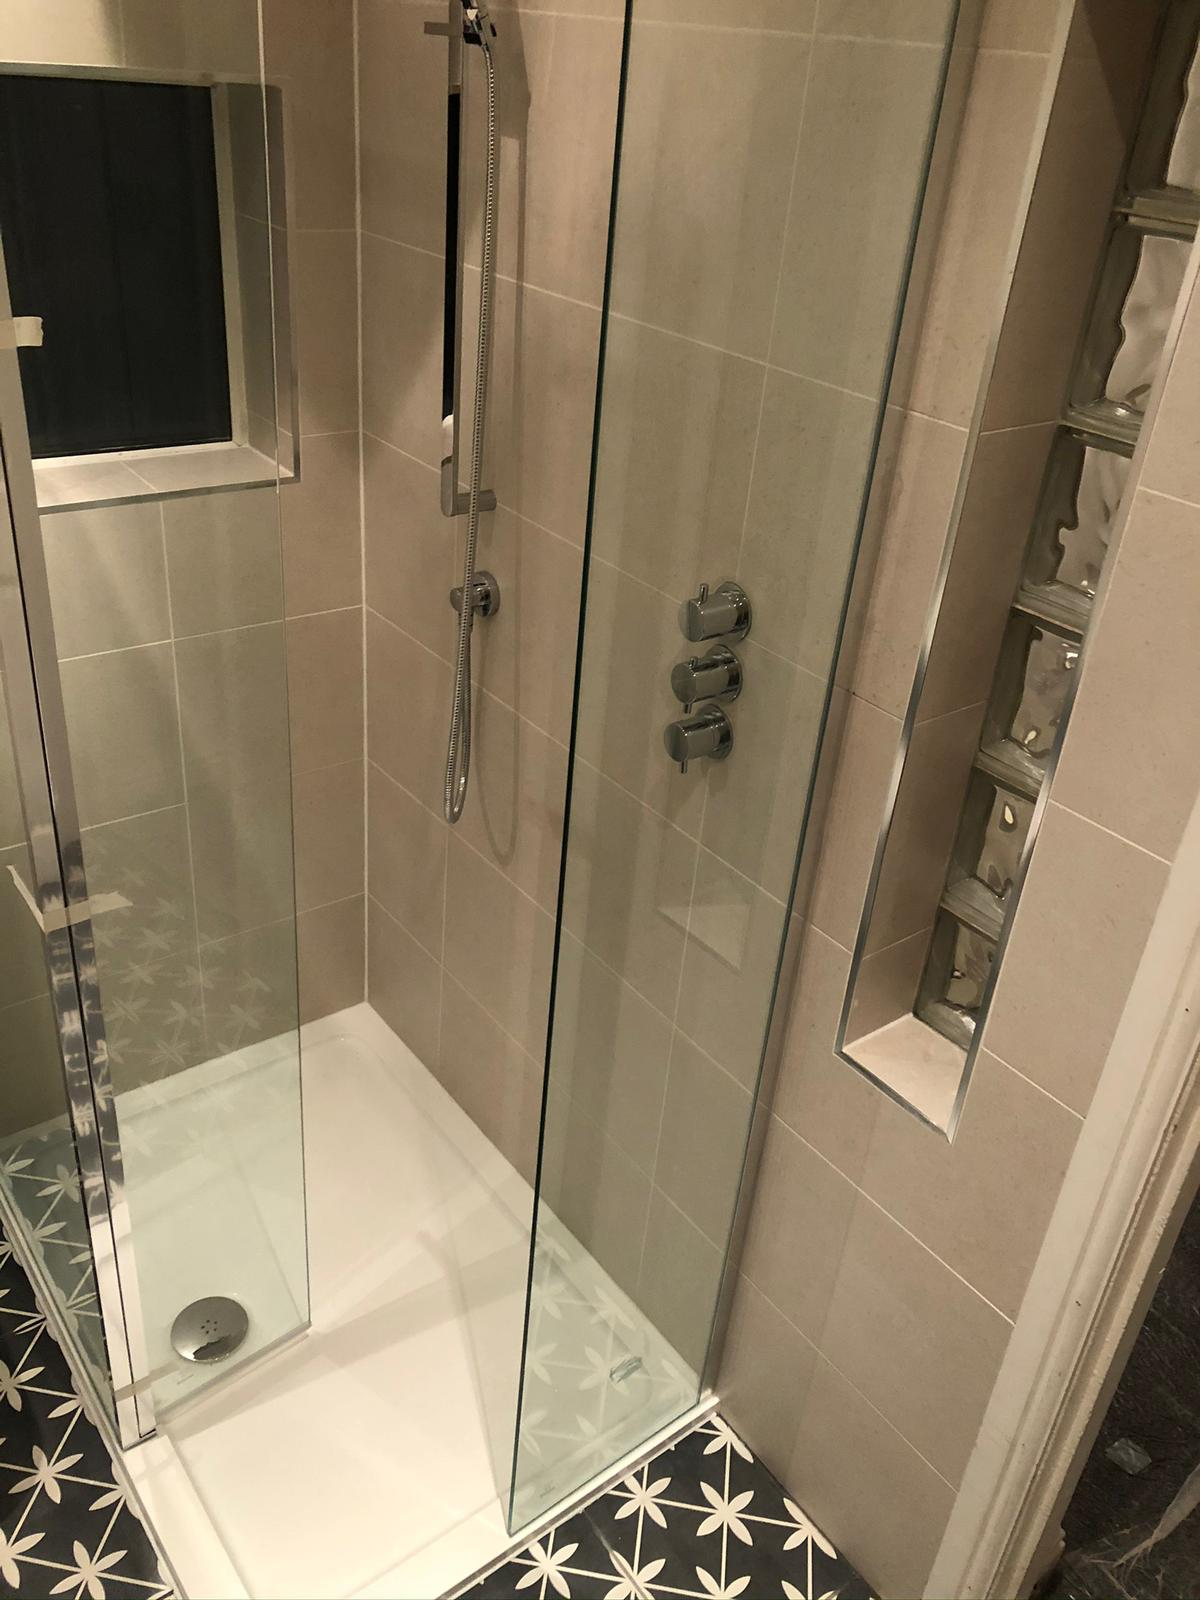 Bathroom renovation complete shower installation with concealed fittings and sanitary wear